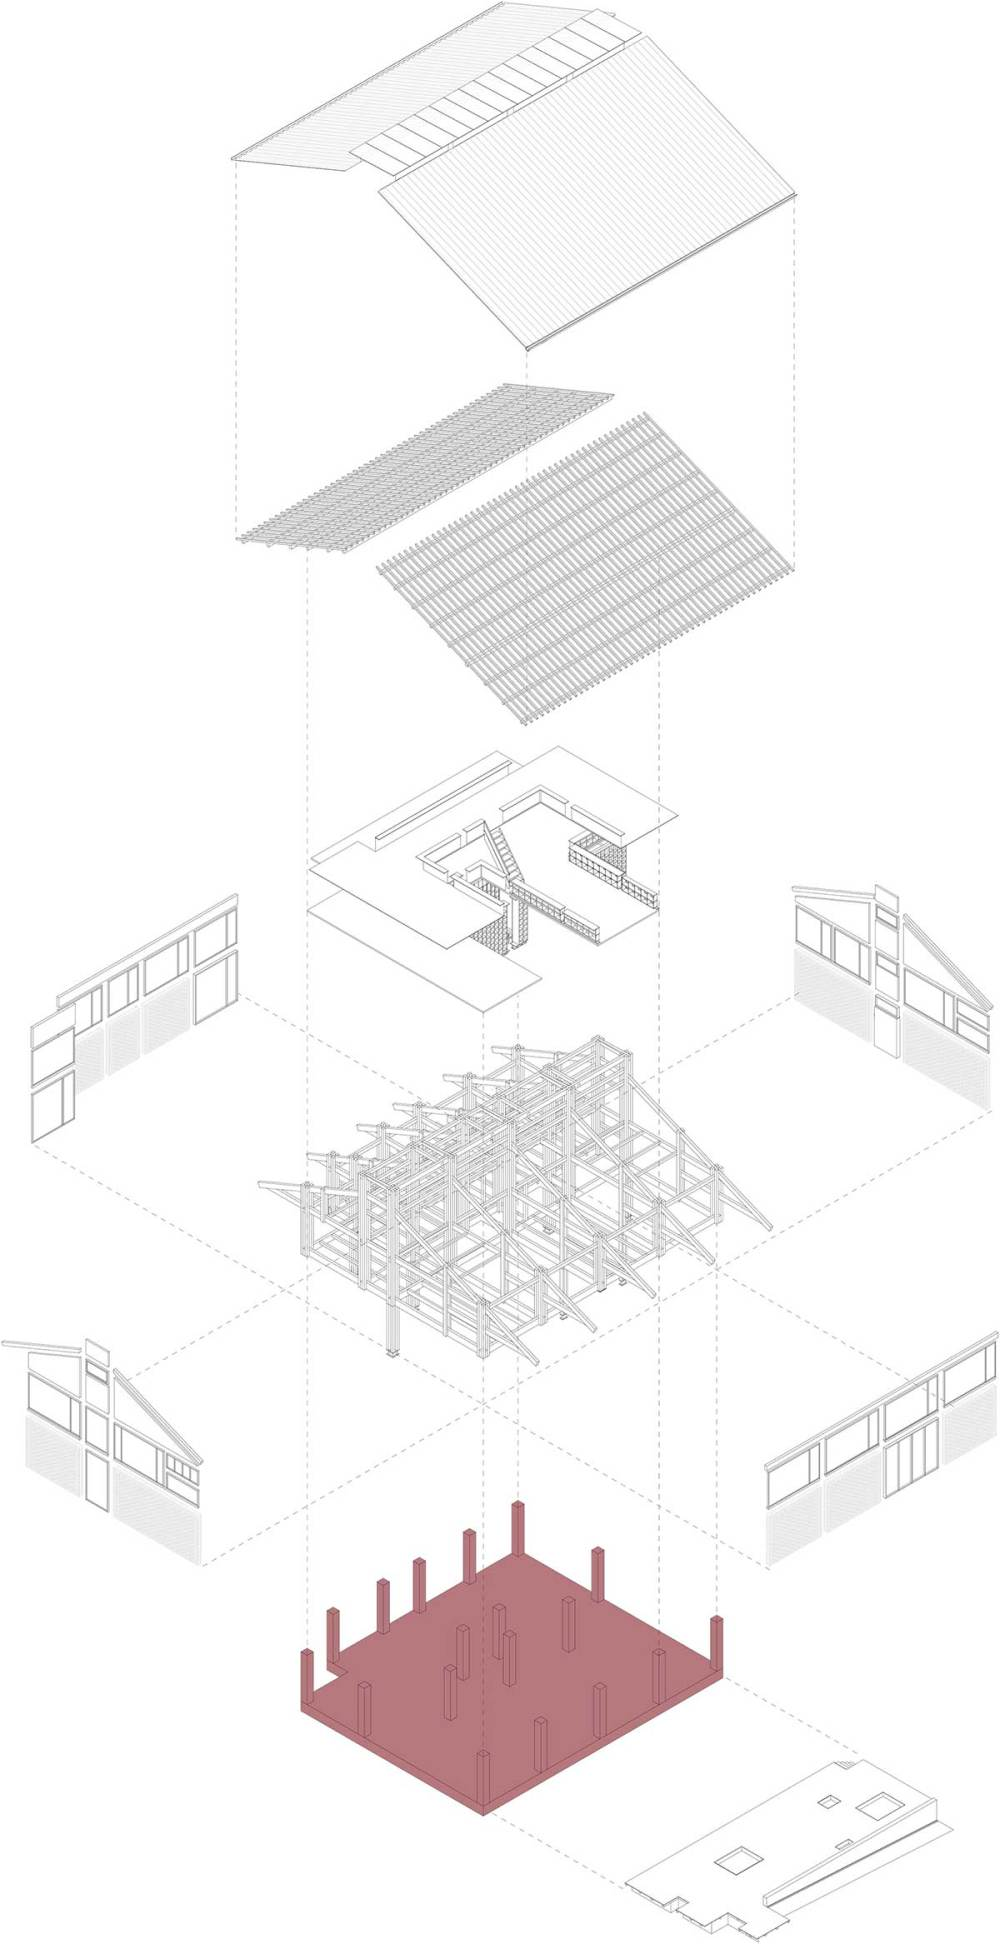 Exploded diagram - Party and Public Service Center of Yuanheguan Village / LUO Studio